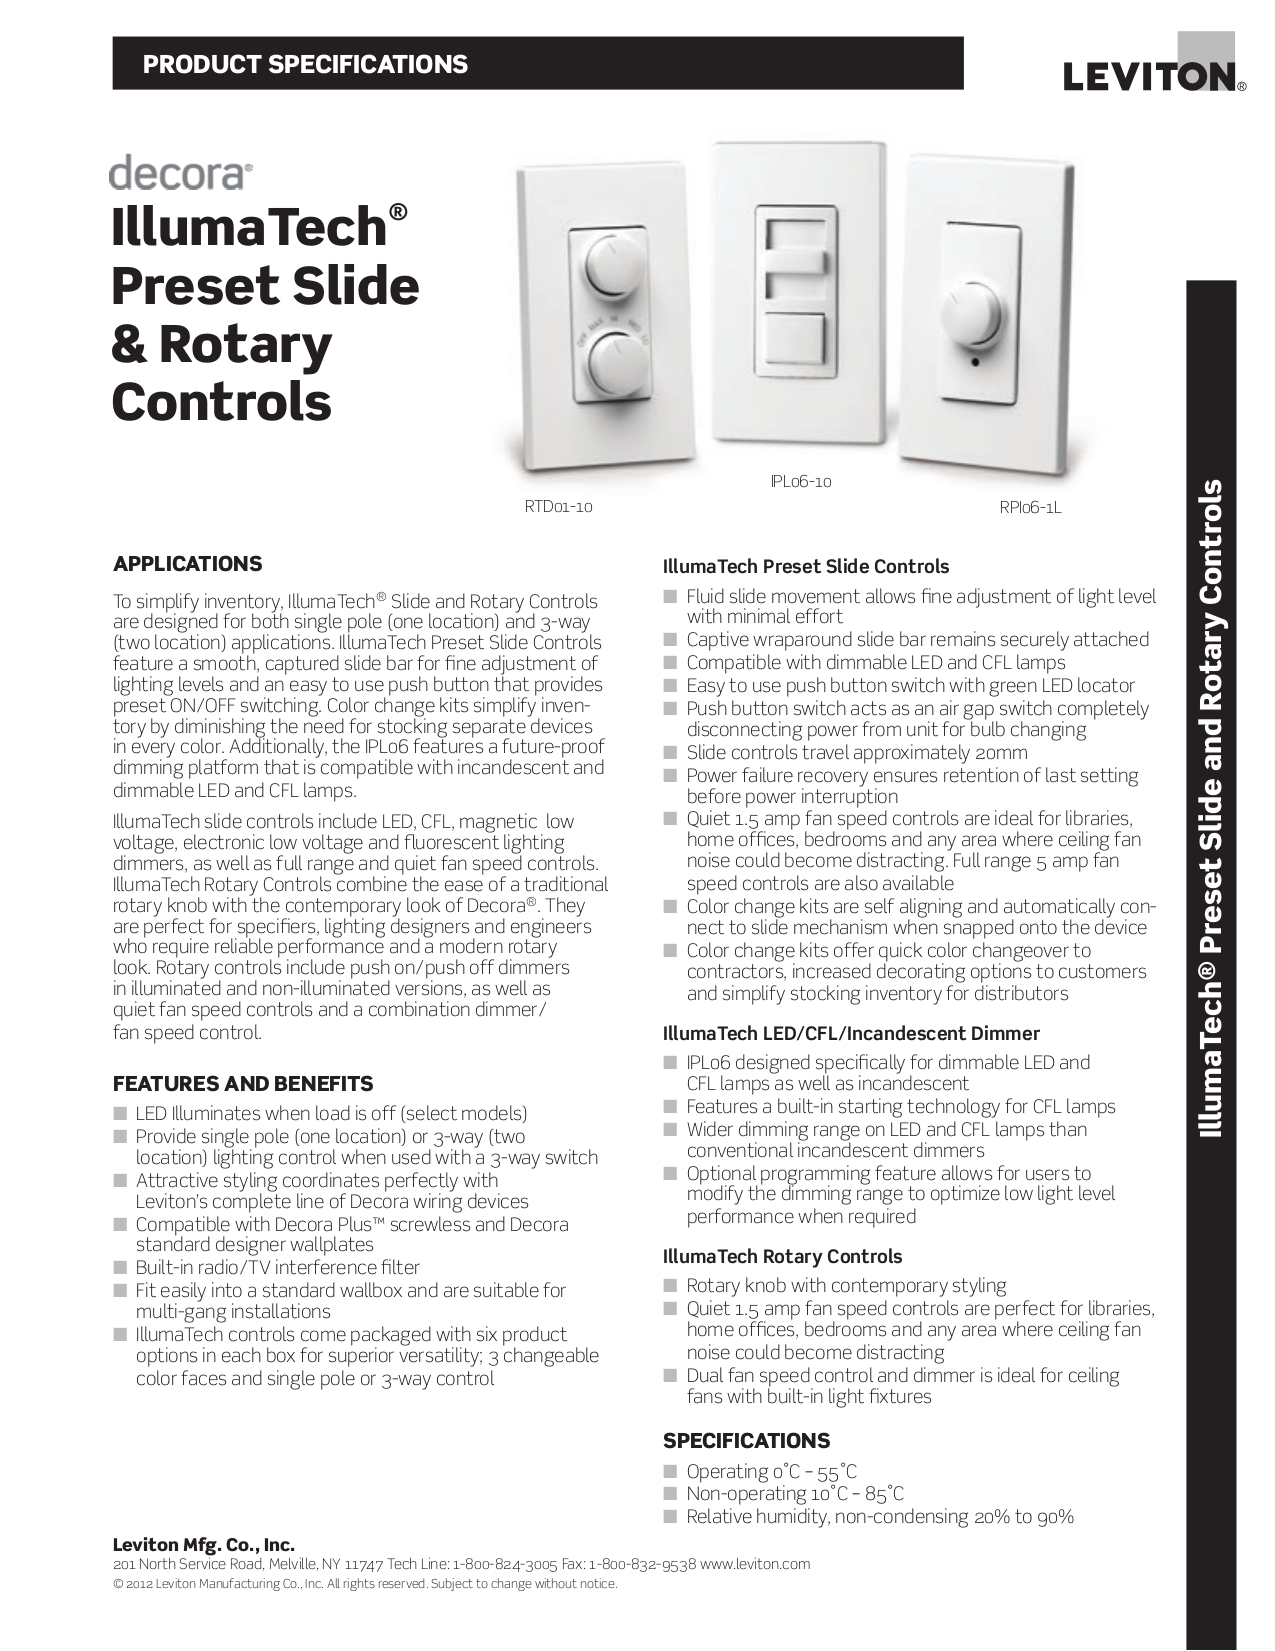 Download Free Pdf For Leviton Illumatech Ipm10 1l Dimmers Other Manual Rotary Dimmer Wiring Diagram